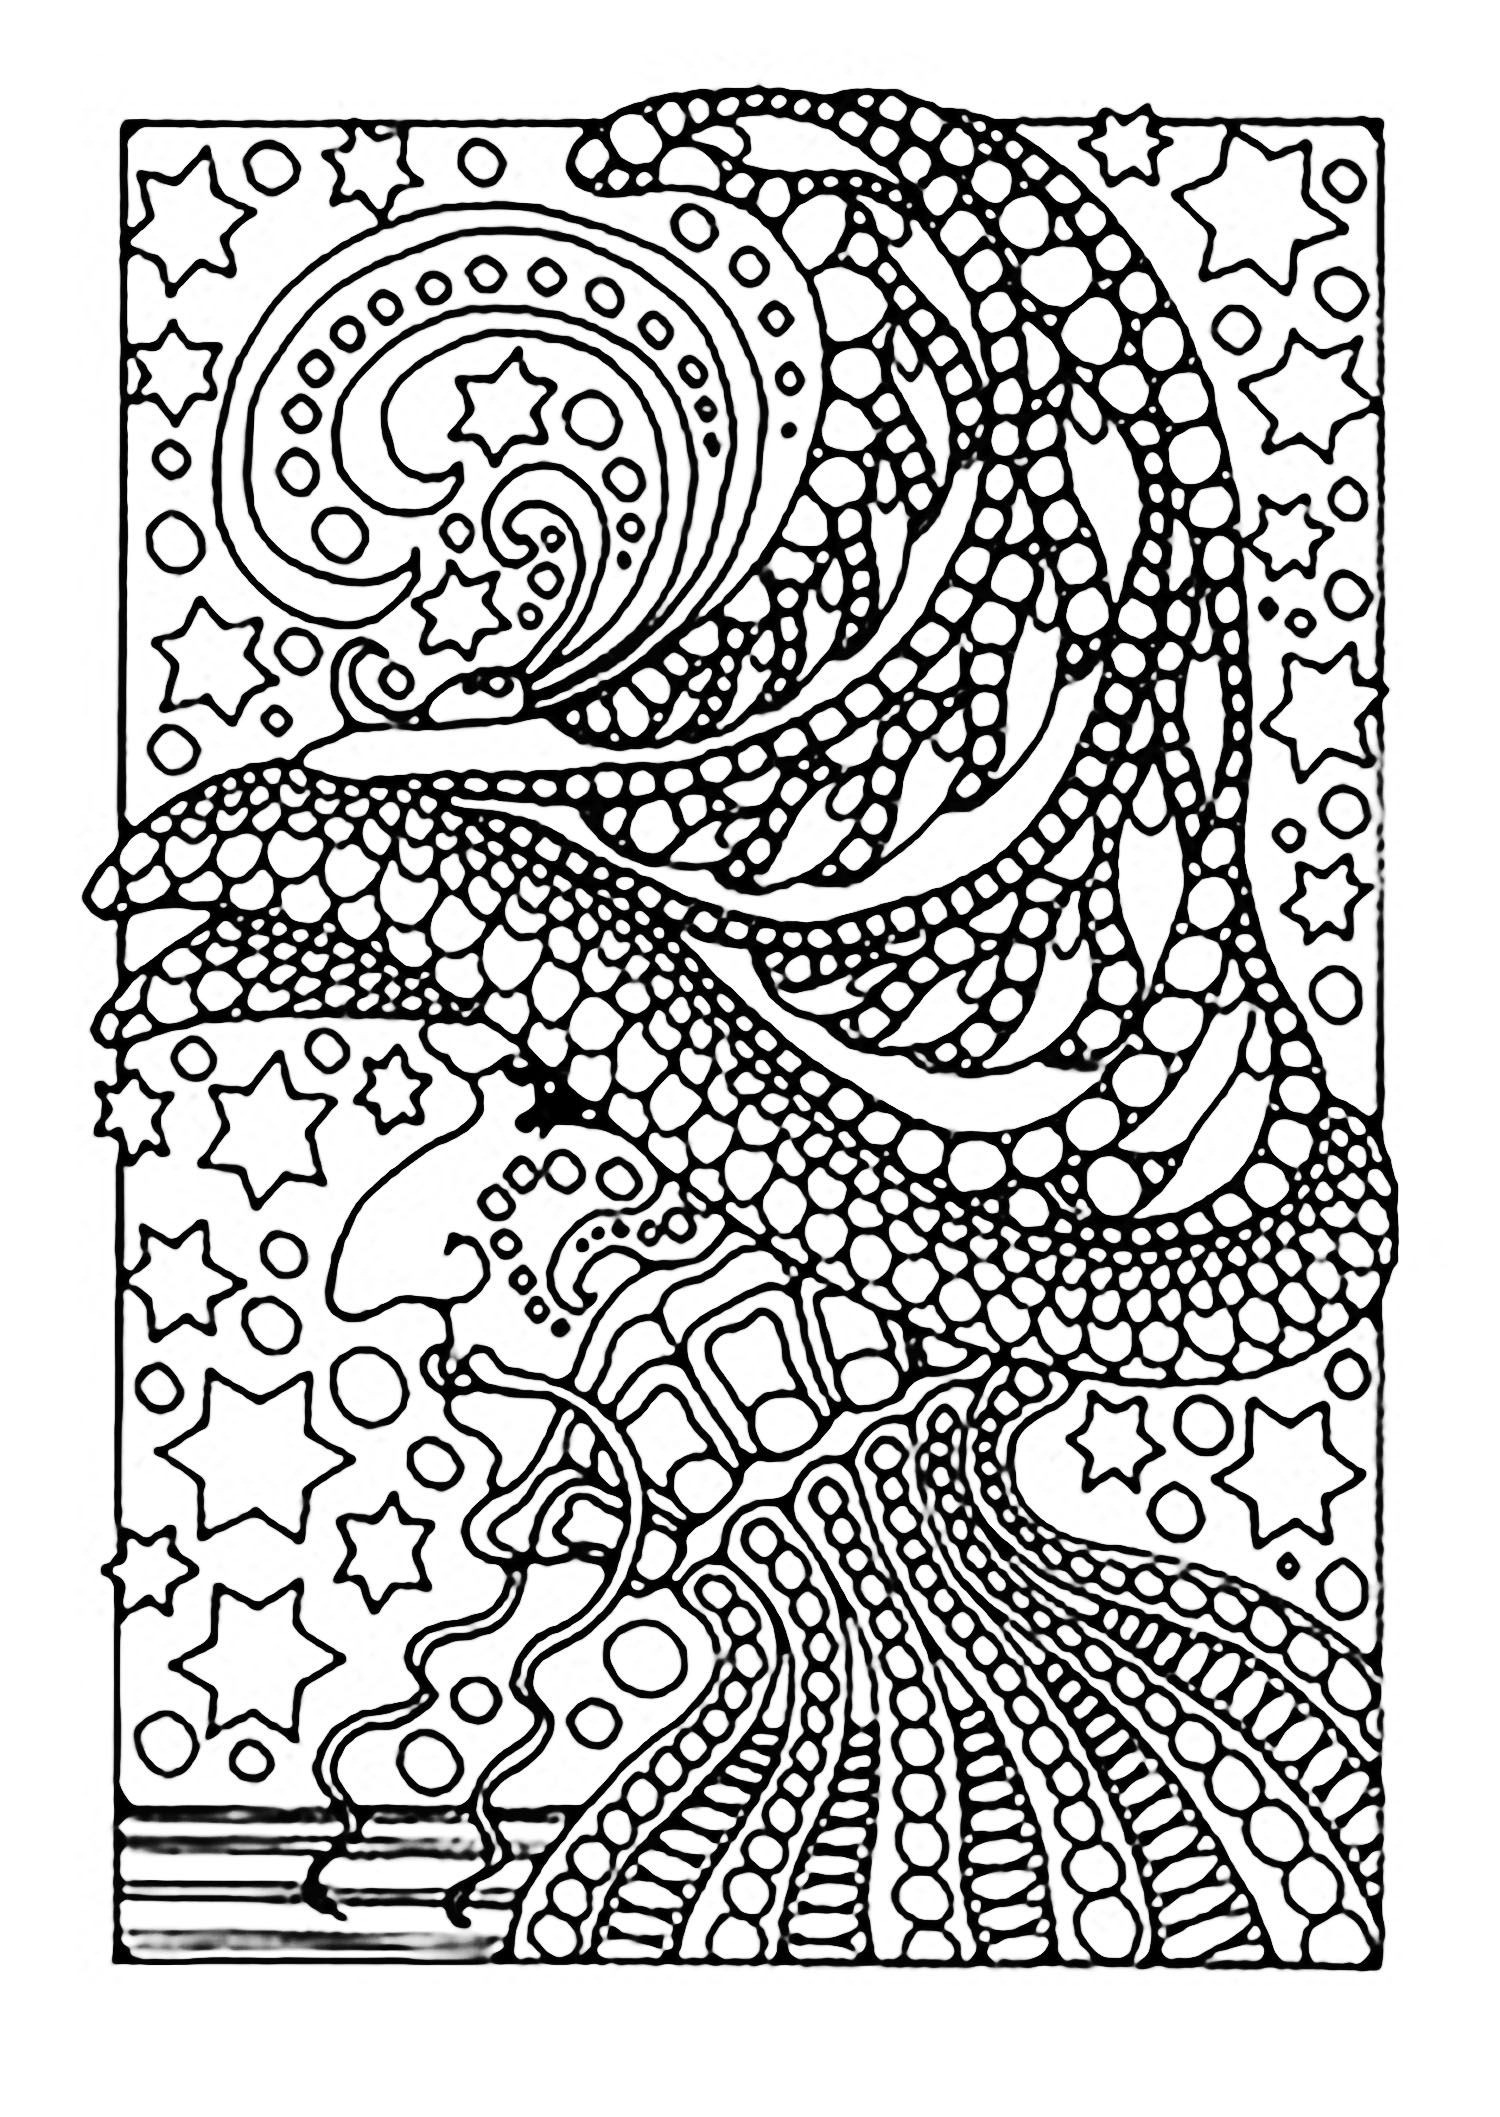 Zentangle Coloring Pages  Printable 18o - Free For kids